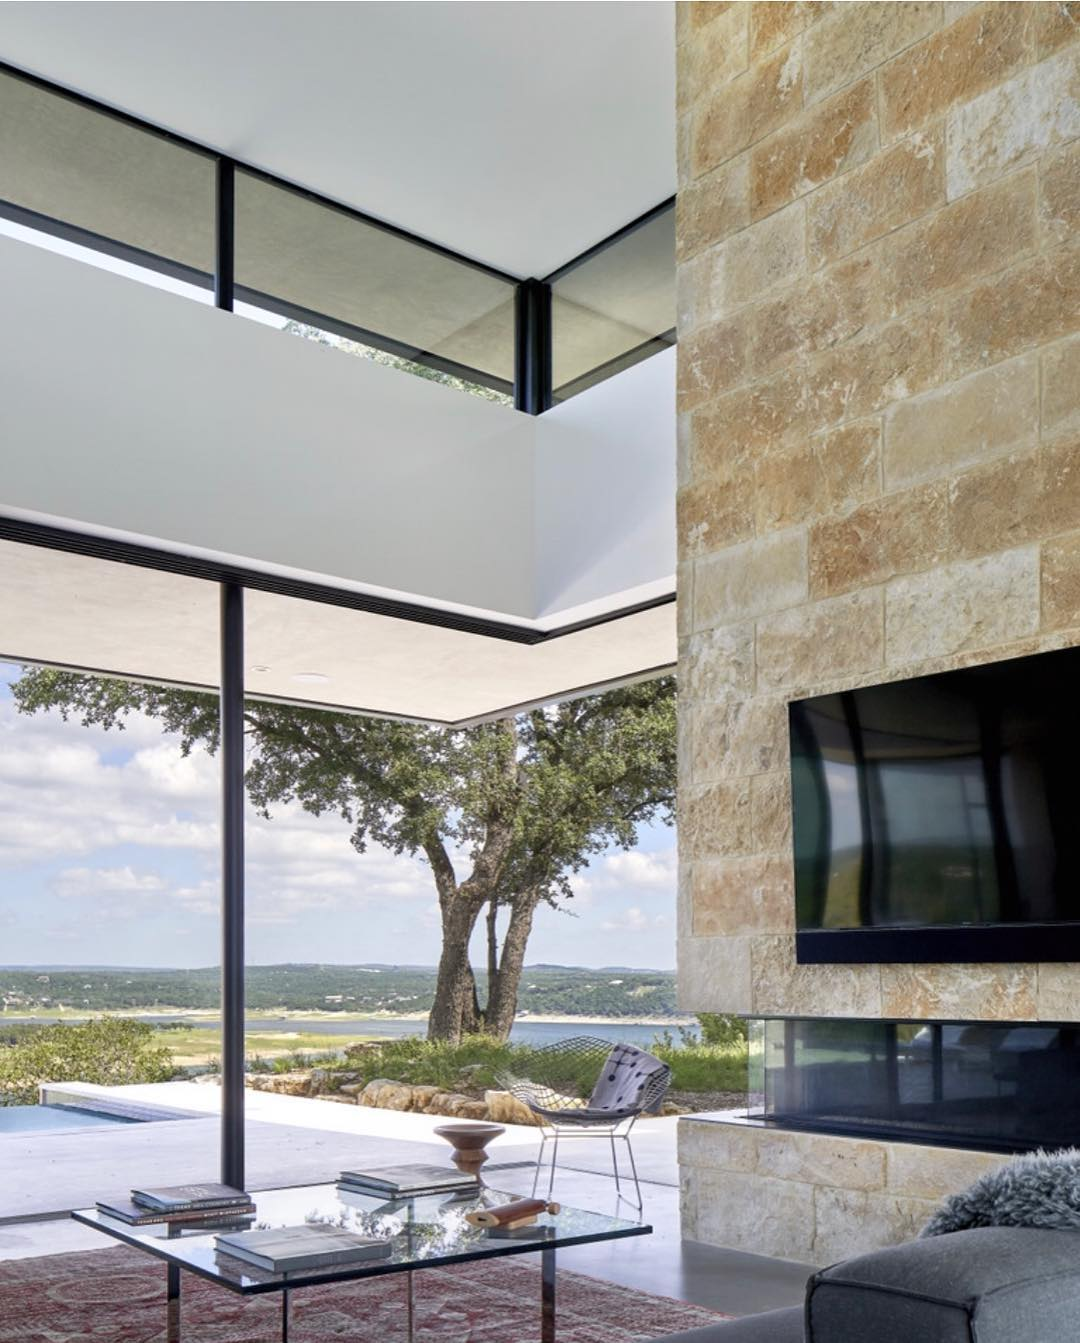 Our clients are loving their @dc_architecture home overlooking Lake Travis.